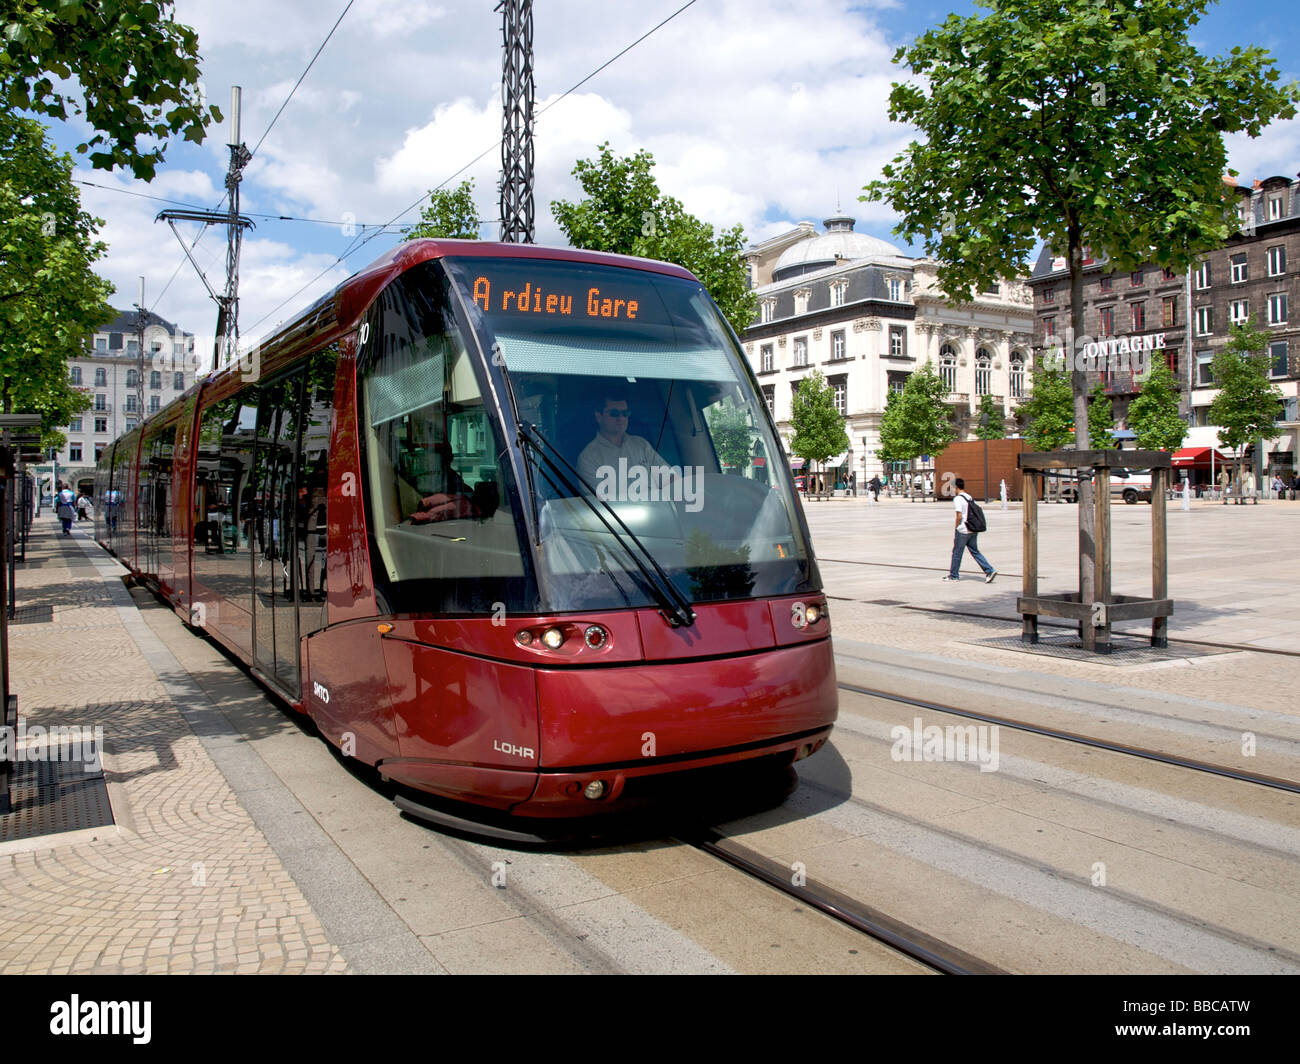 Tram in Clermont Ferrand, Auvergne, France - Stock Image